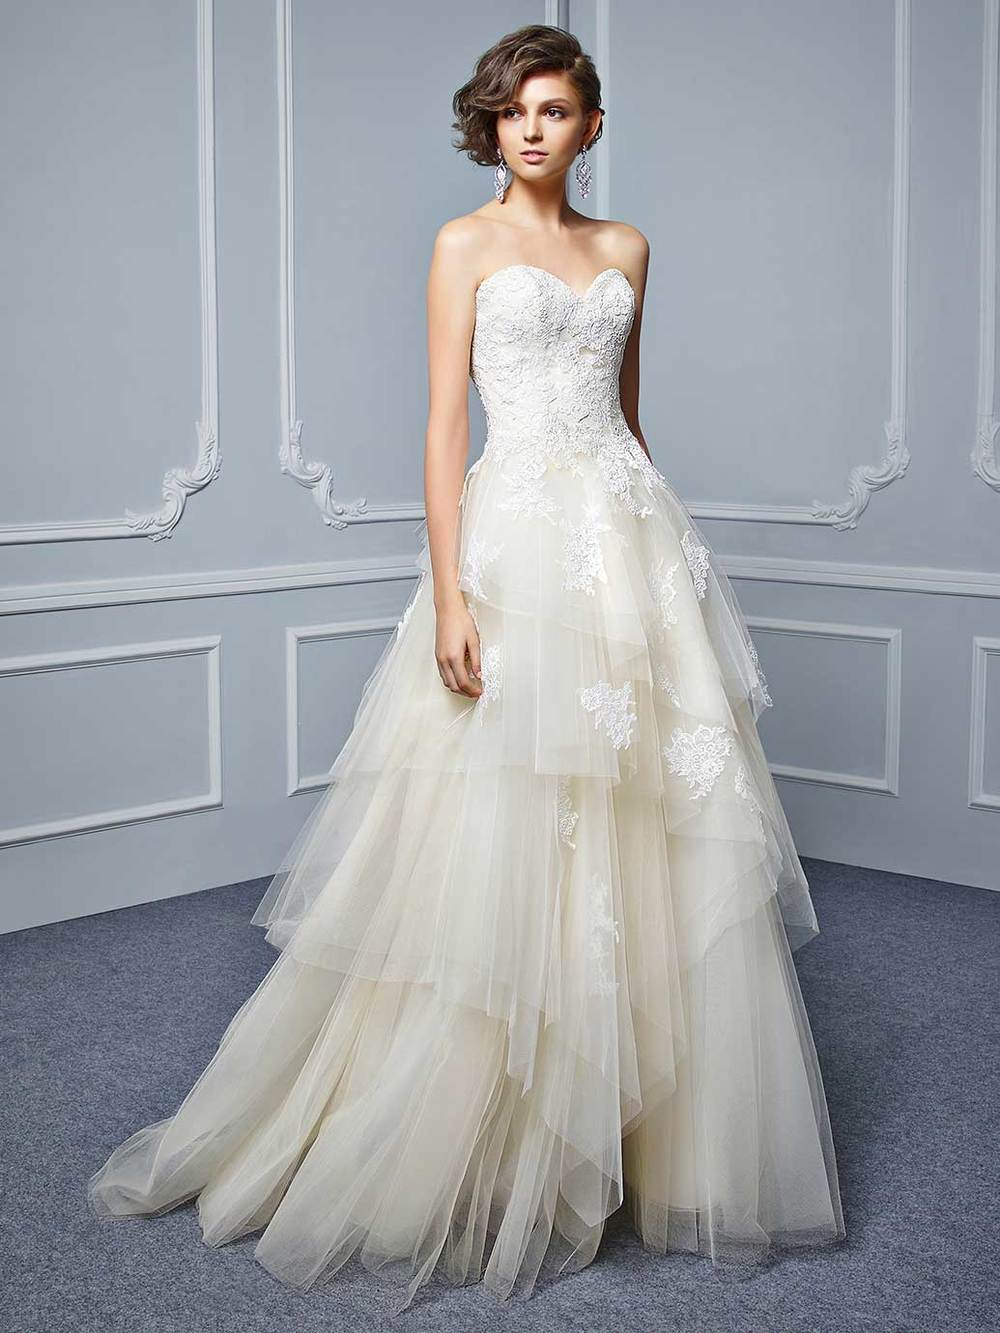 Enzoani - Modern & Romantic 2017 Collection Bridal Gowns - UK ...